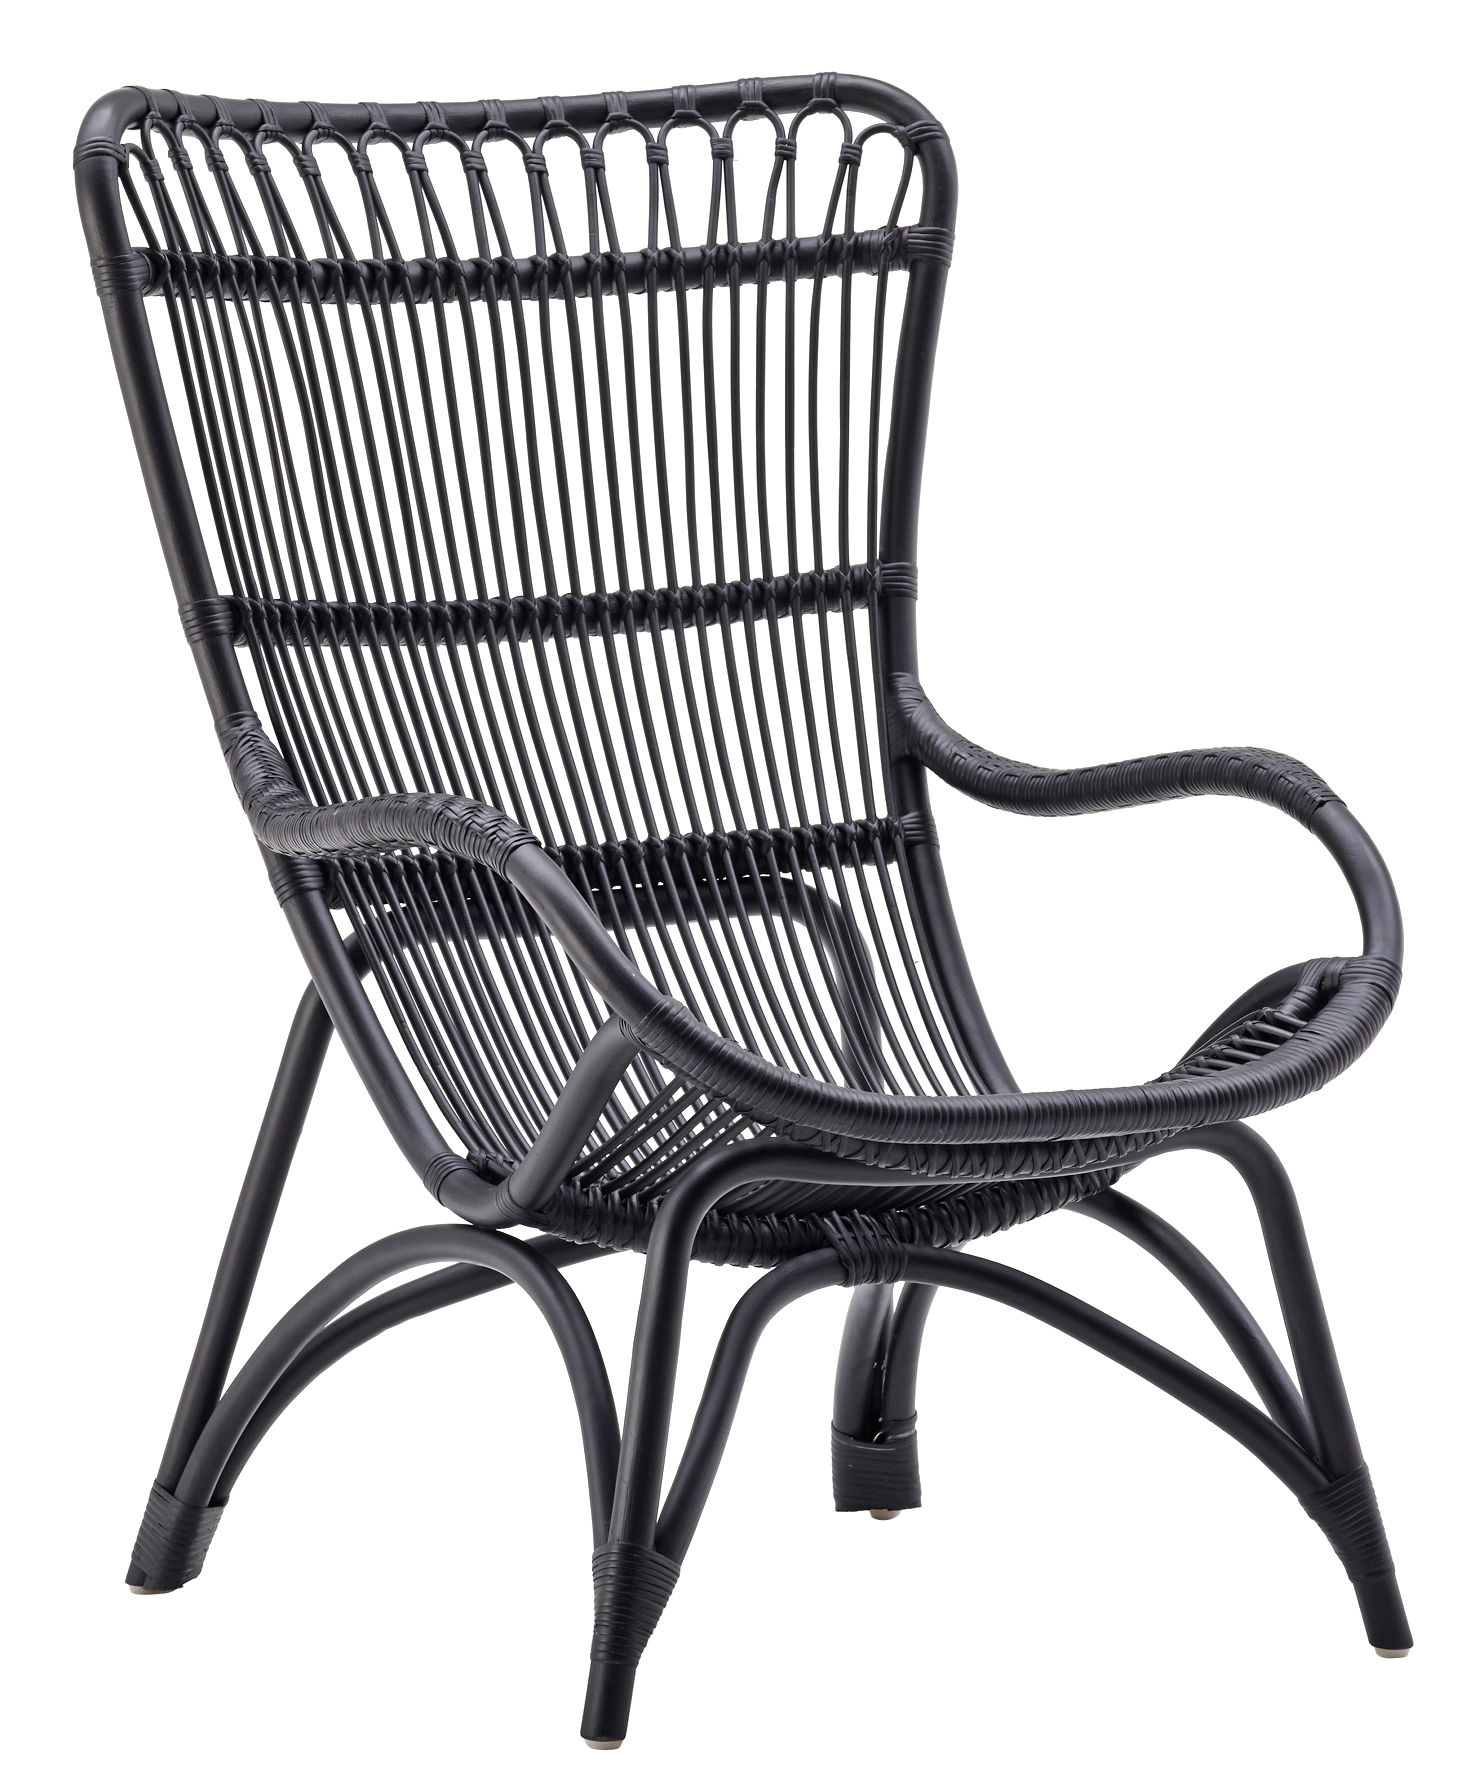 Furniture - Armchairs - Monet Armchair by Sika Design - Black - Rattan